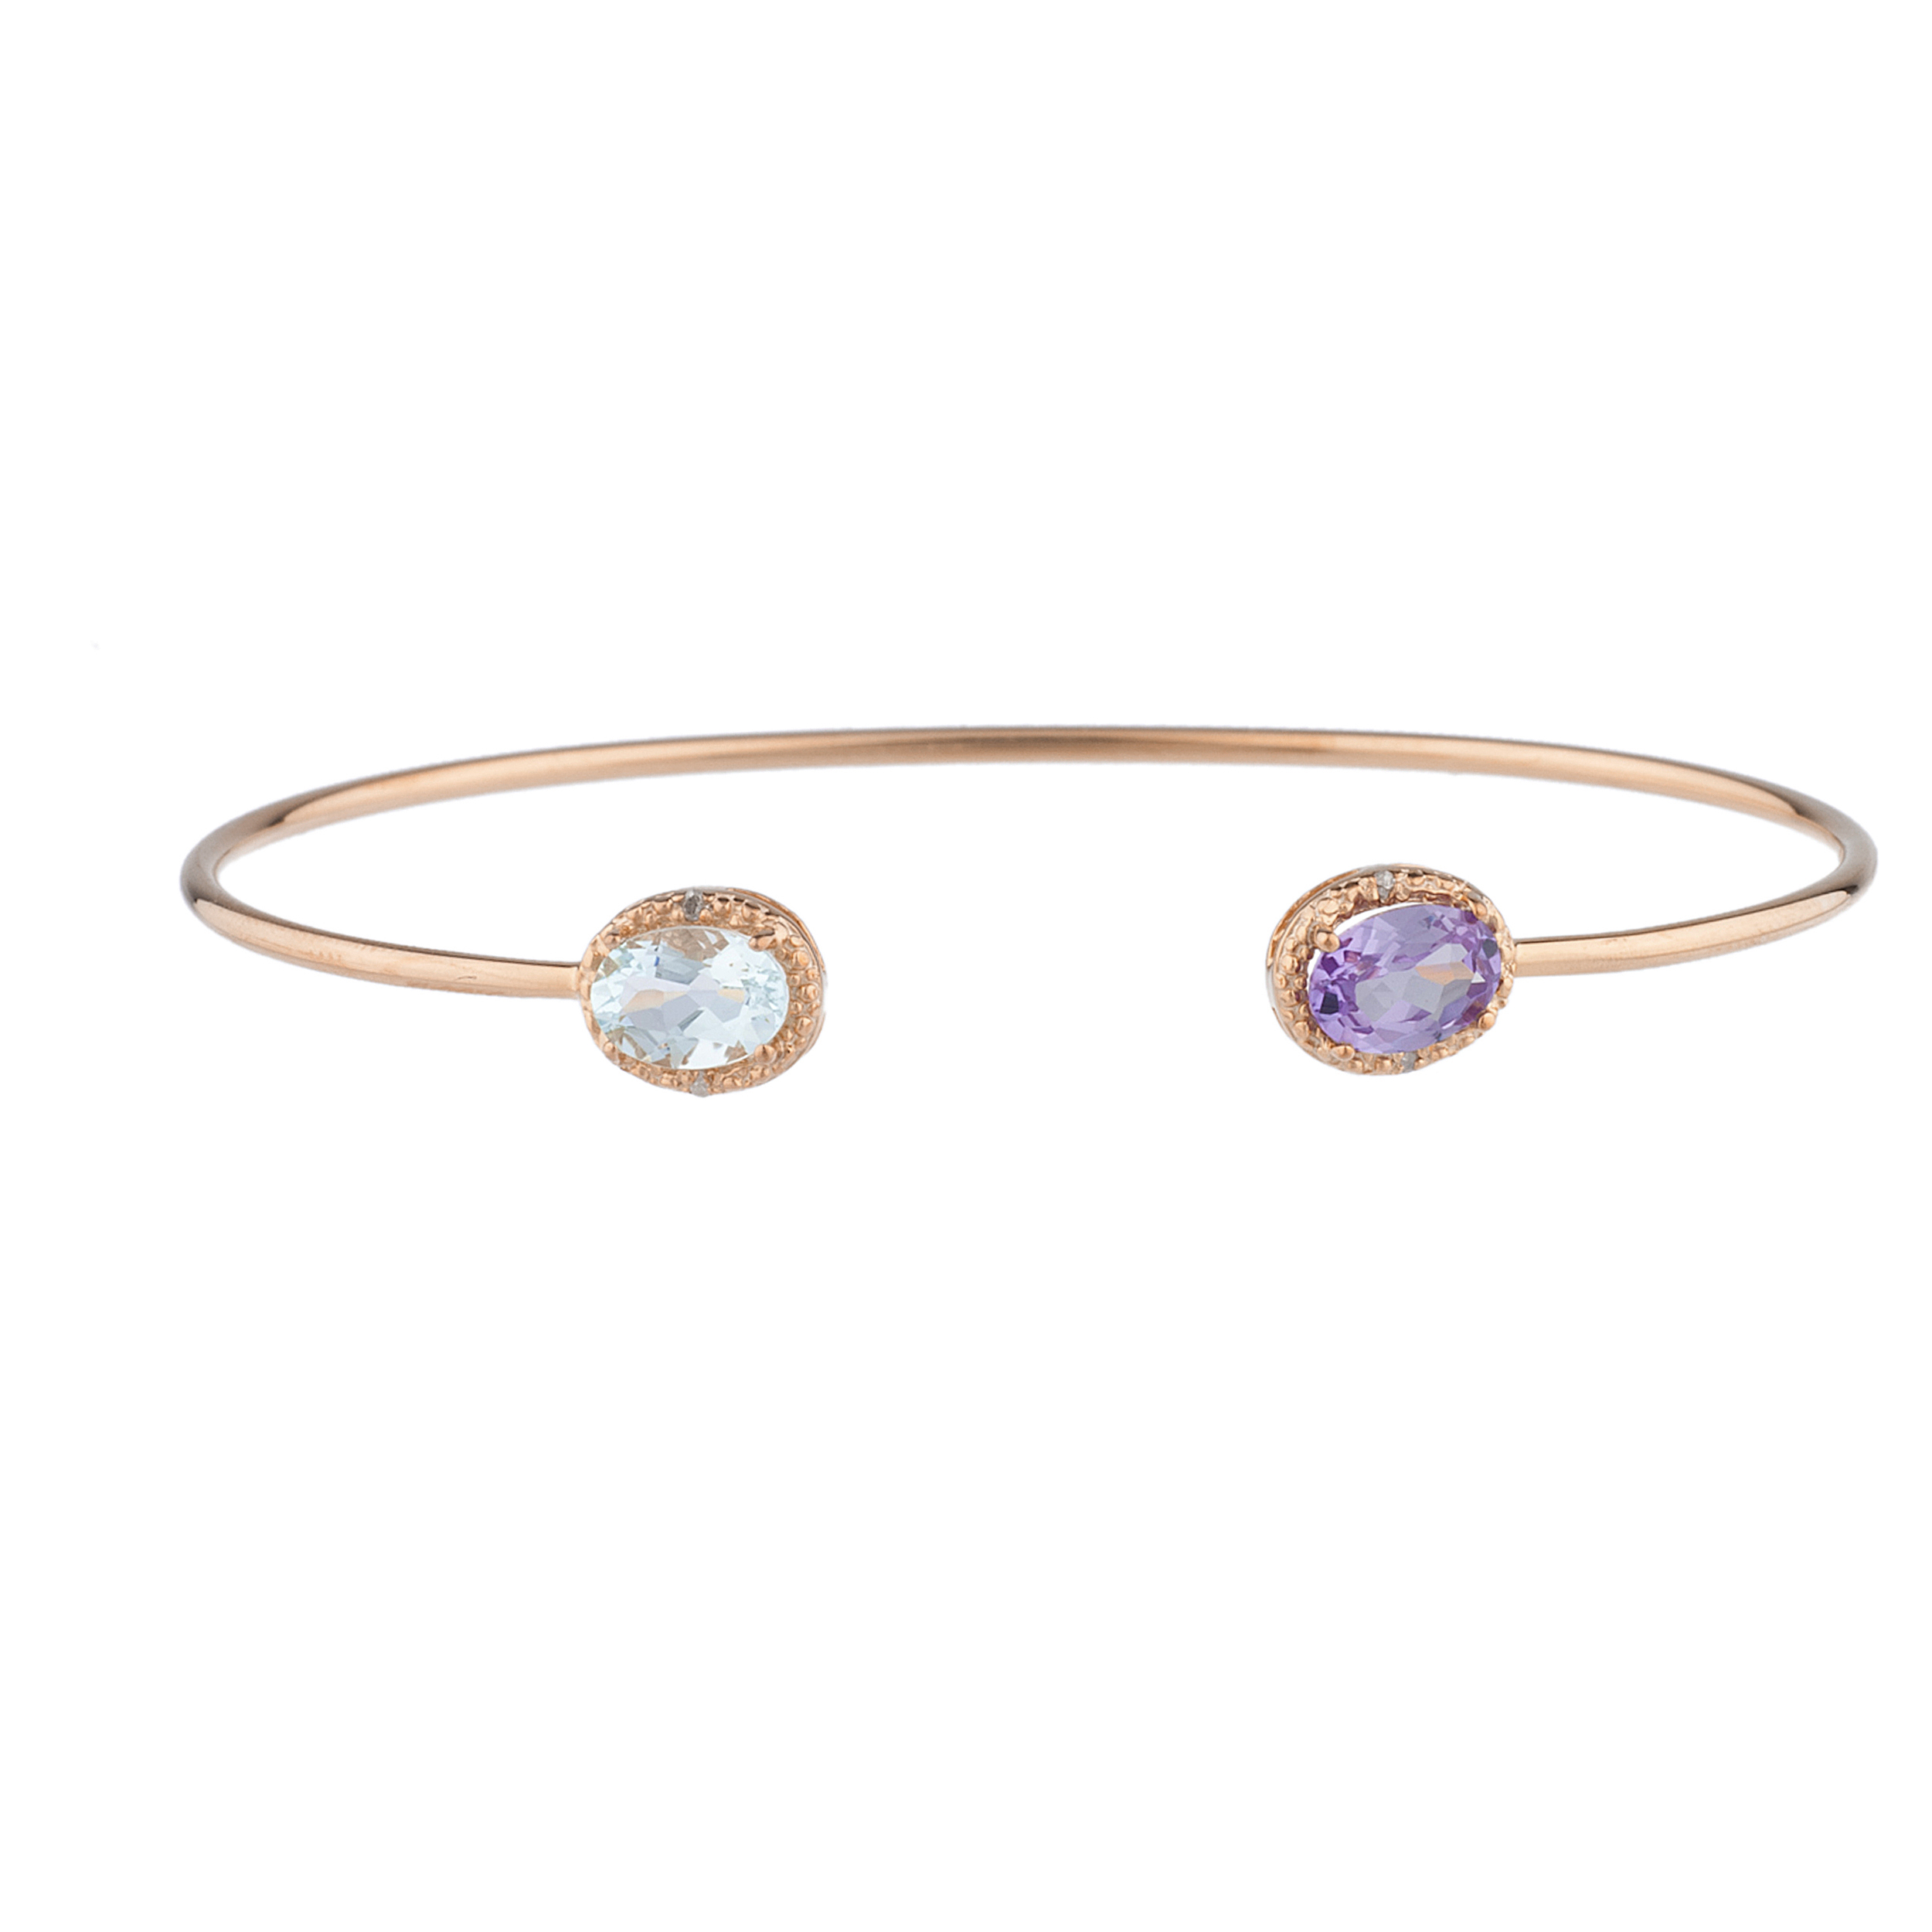 Genuine Aquamarine & Alexandrite Diamond Bangle Oval Bracelet 14Kt Yellow Gold Plated Over .925 Sterling Silver by Elizabeth Jewelry Inc